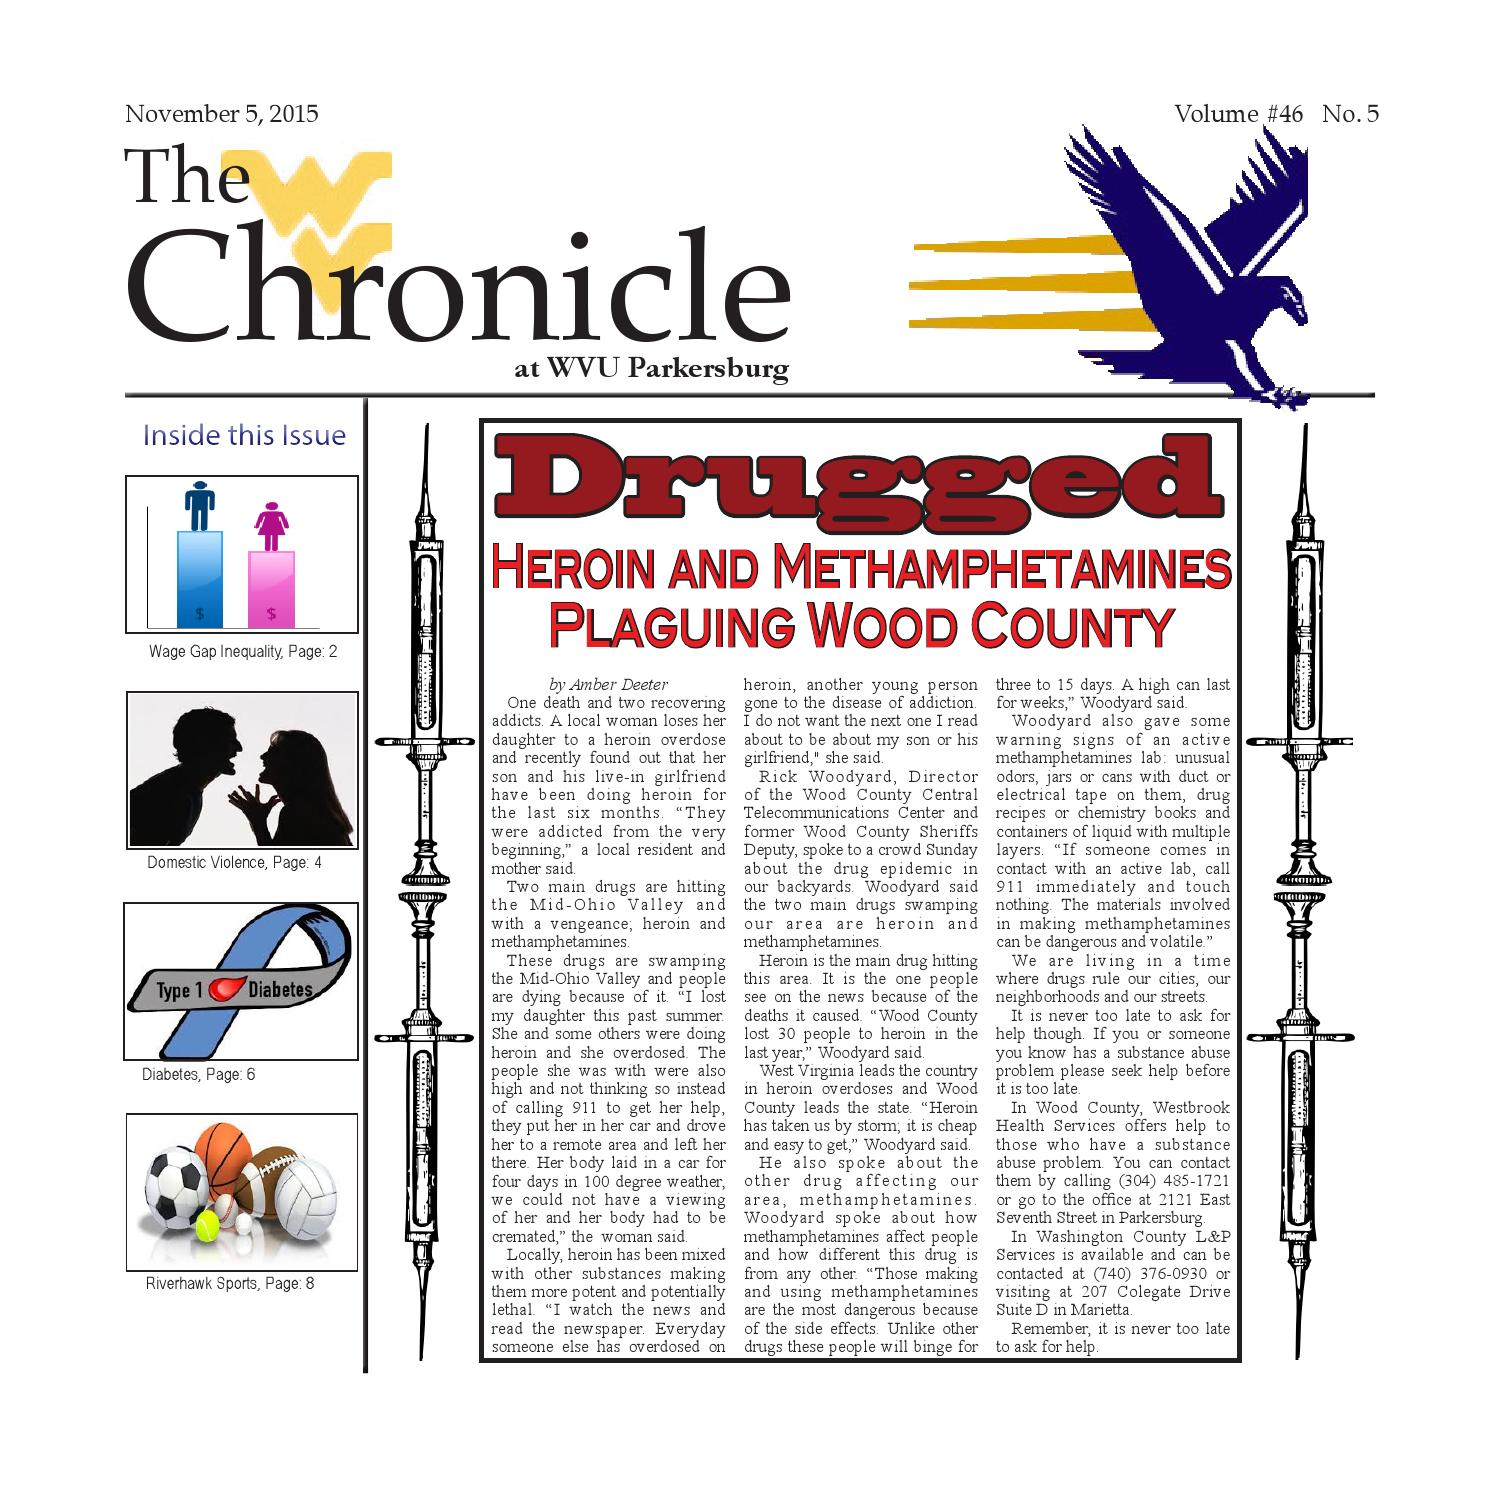 The Chronicle At Wvu Parkersburg Volume 46 No 5 By Torie Jackson Issuu